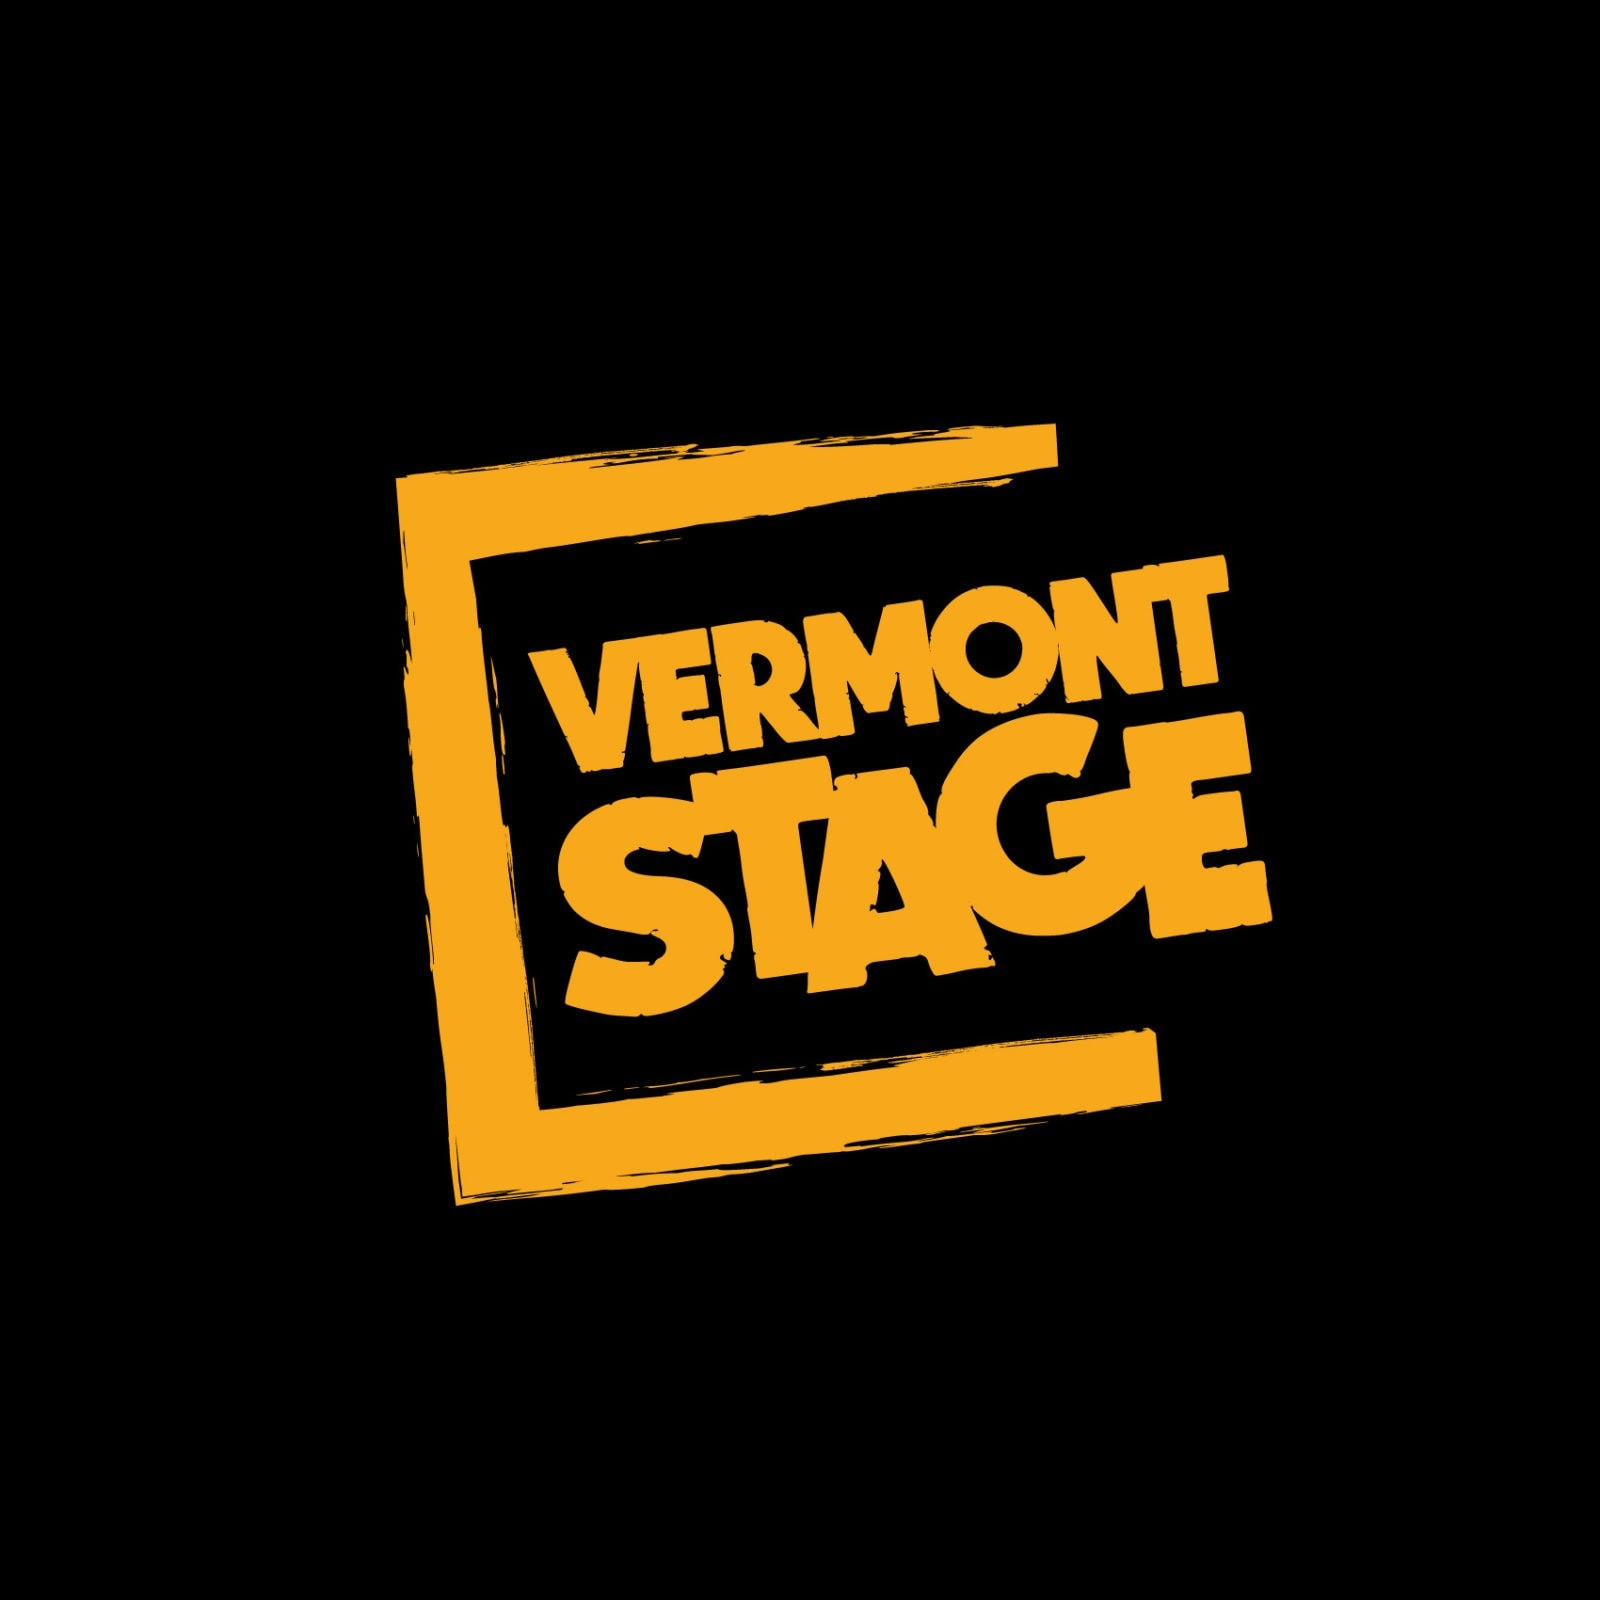 Vermont Stage Logo Design VT Graphic Design by Clutch Creative Co.